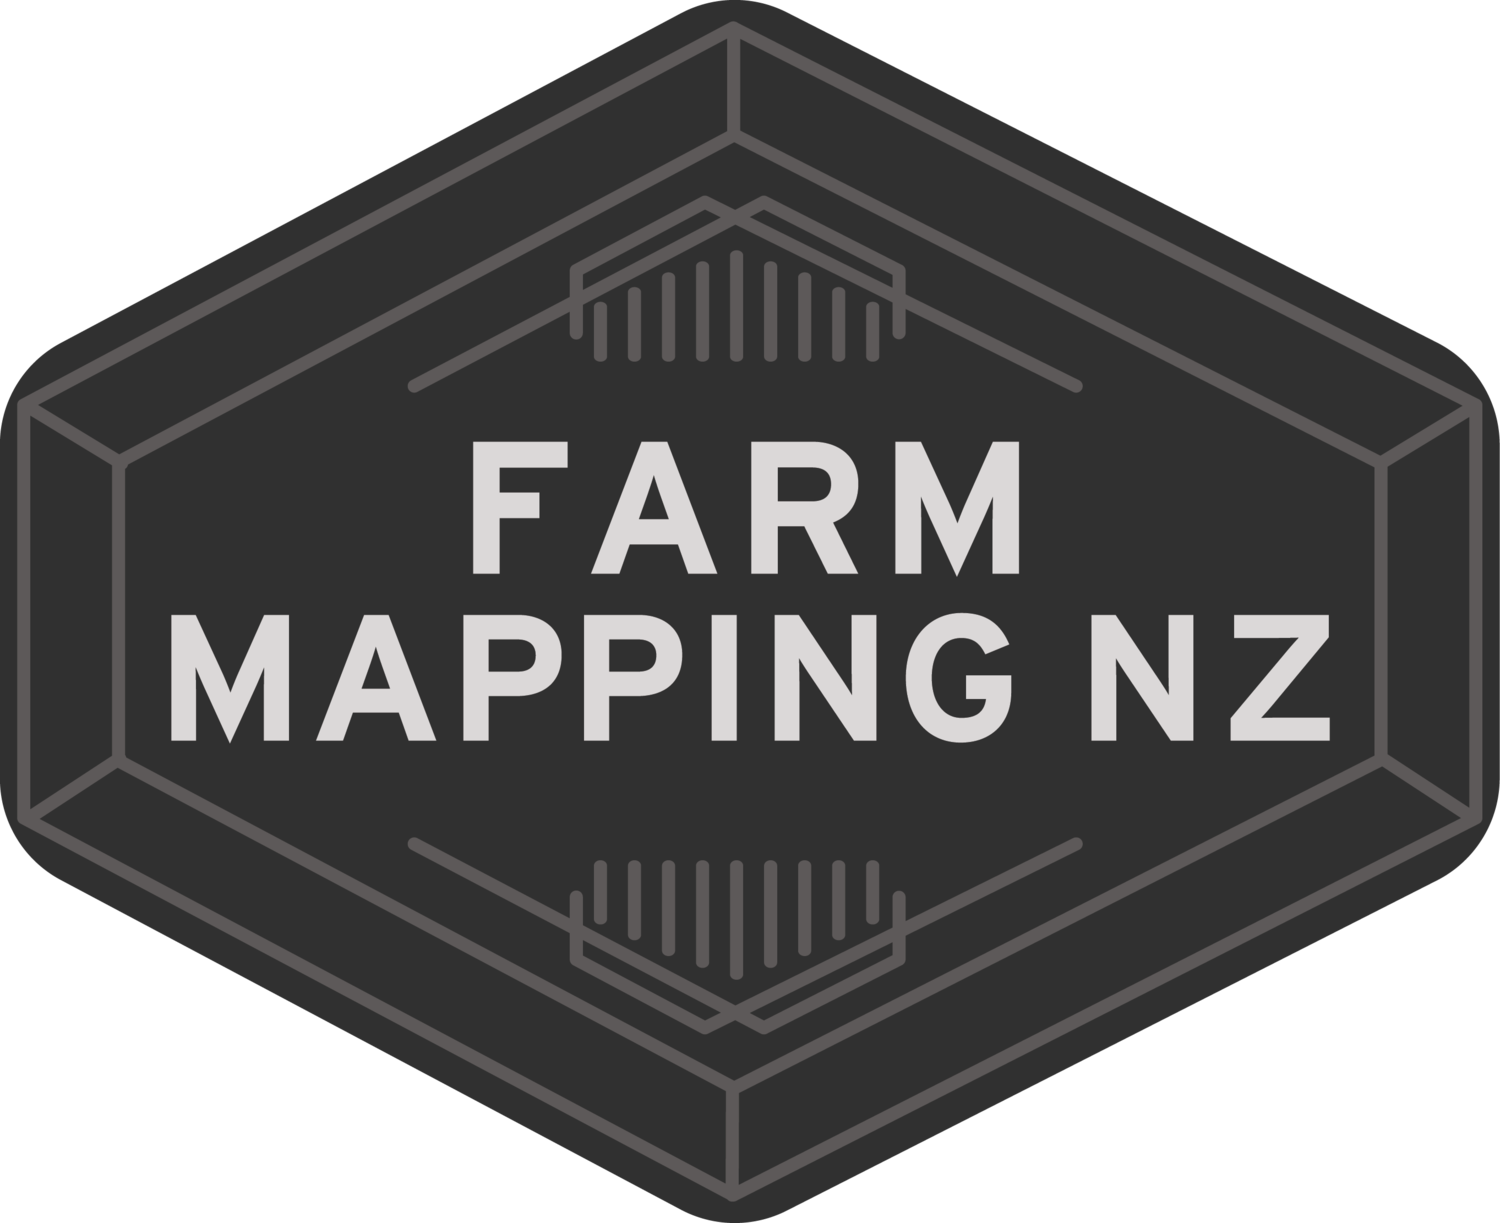 Farm Mapping NZ